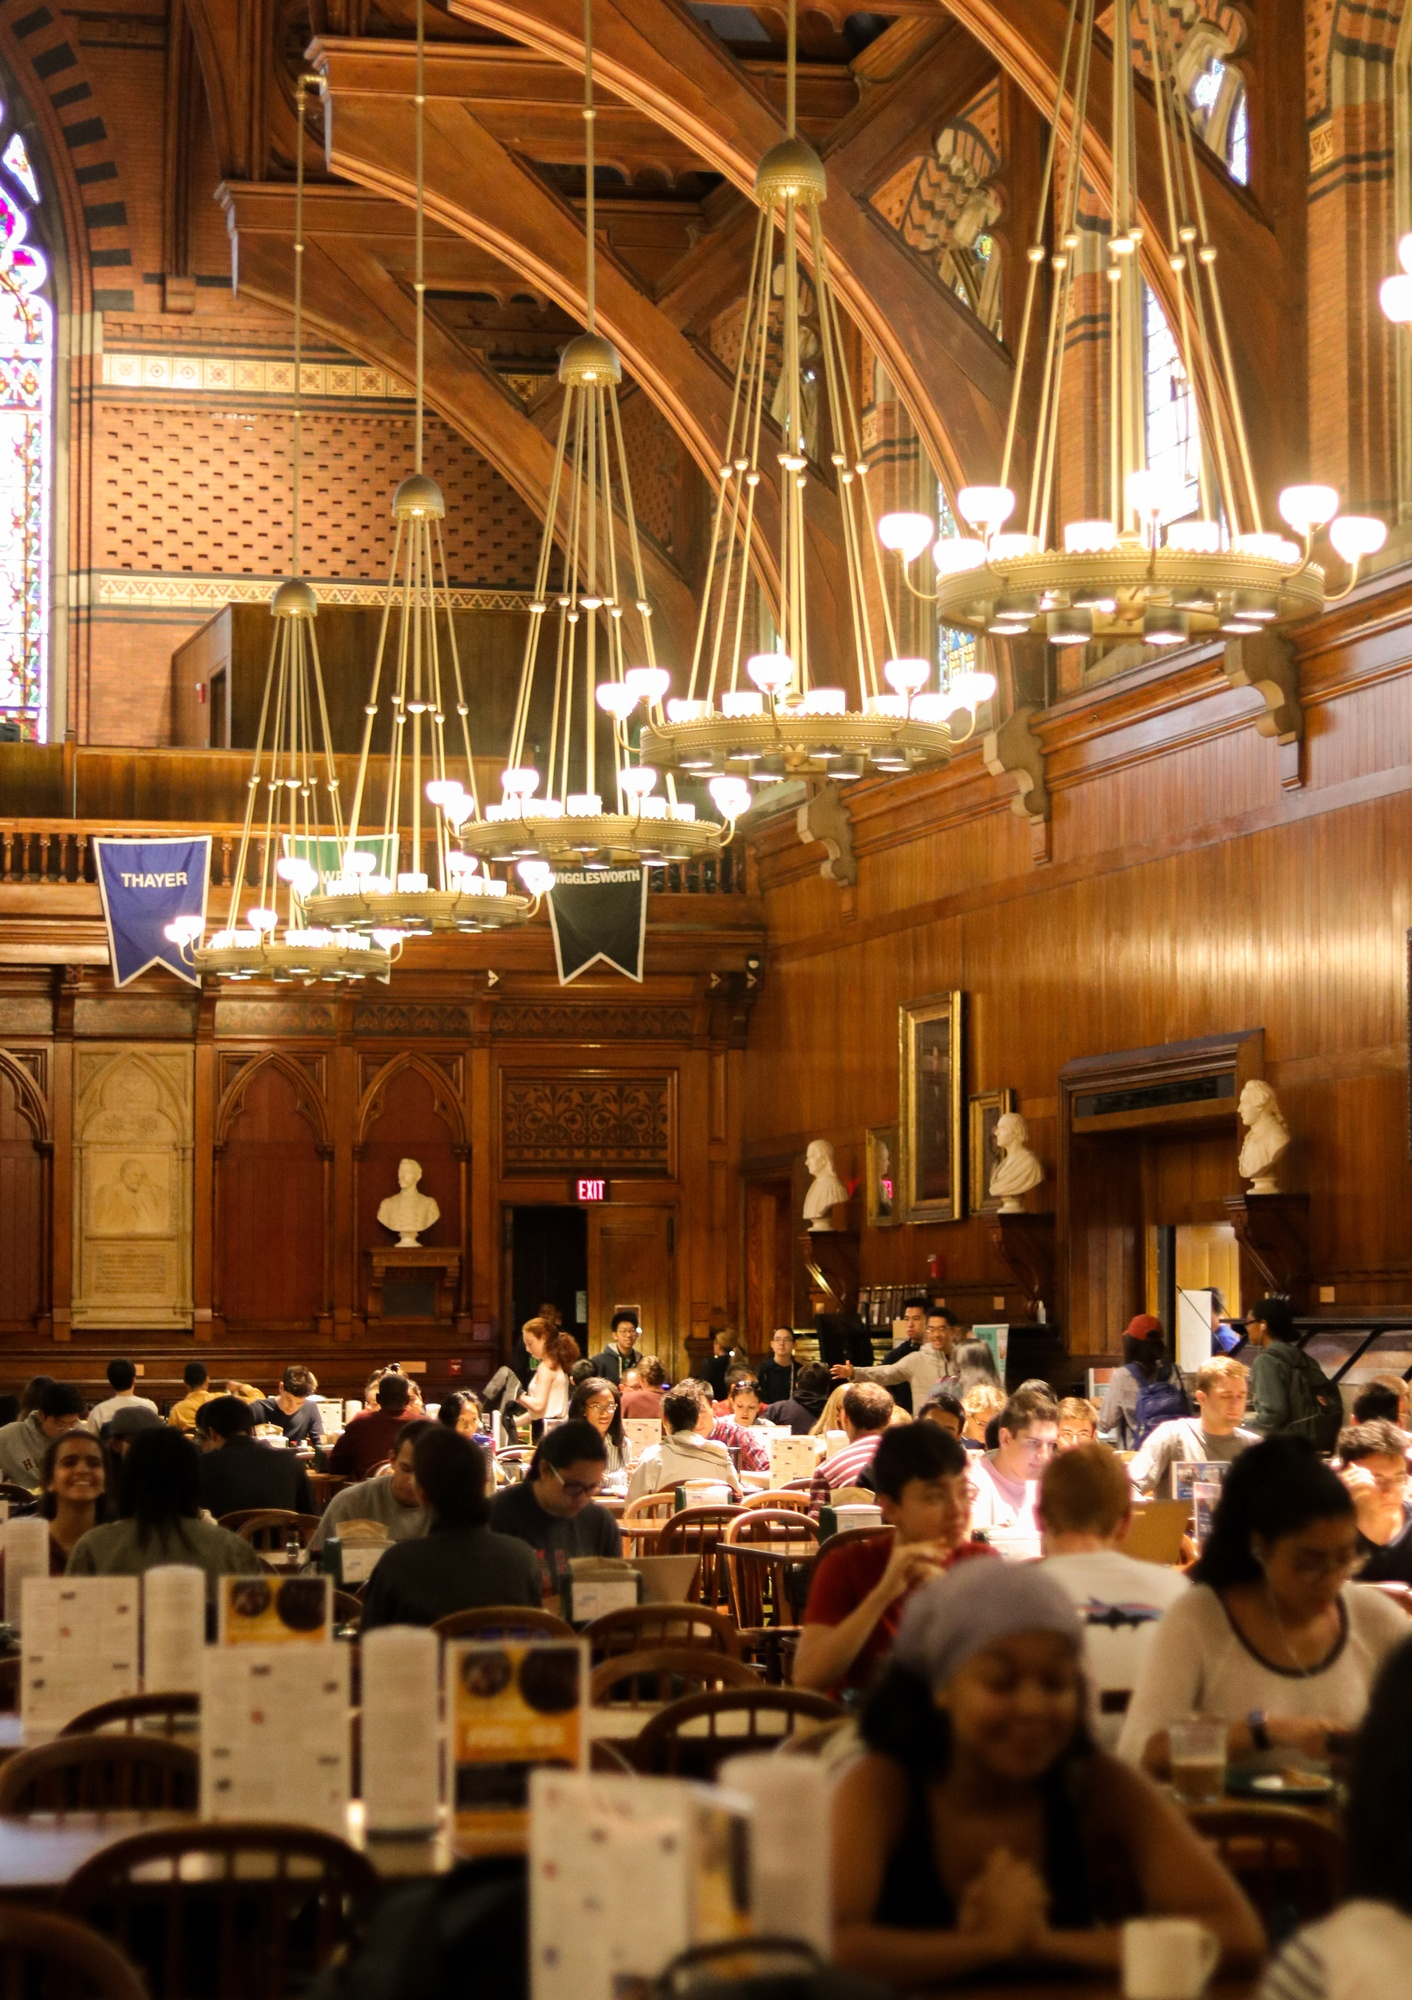 9:42 a.m. Annenberg dining hall is full of college students eating breakfast.